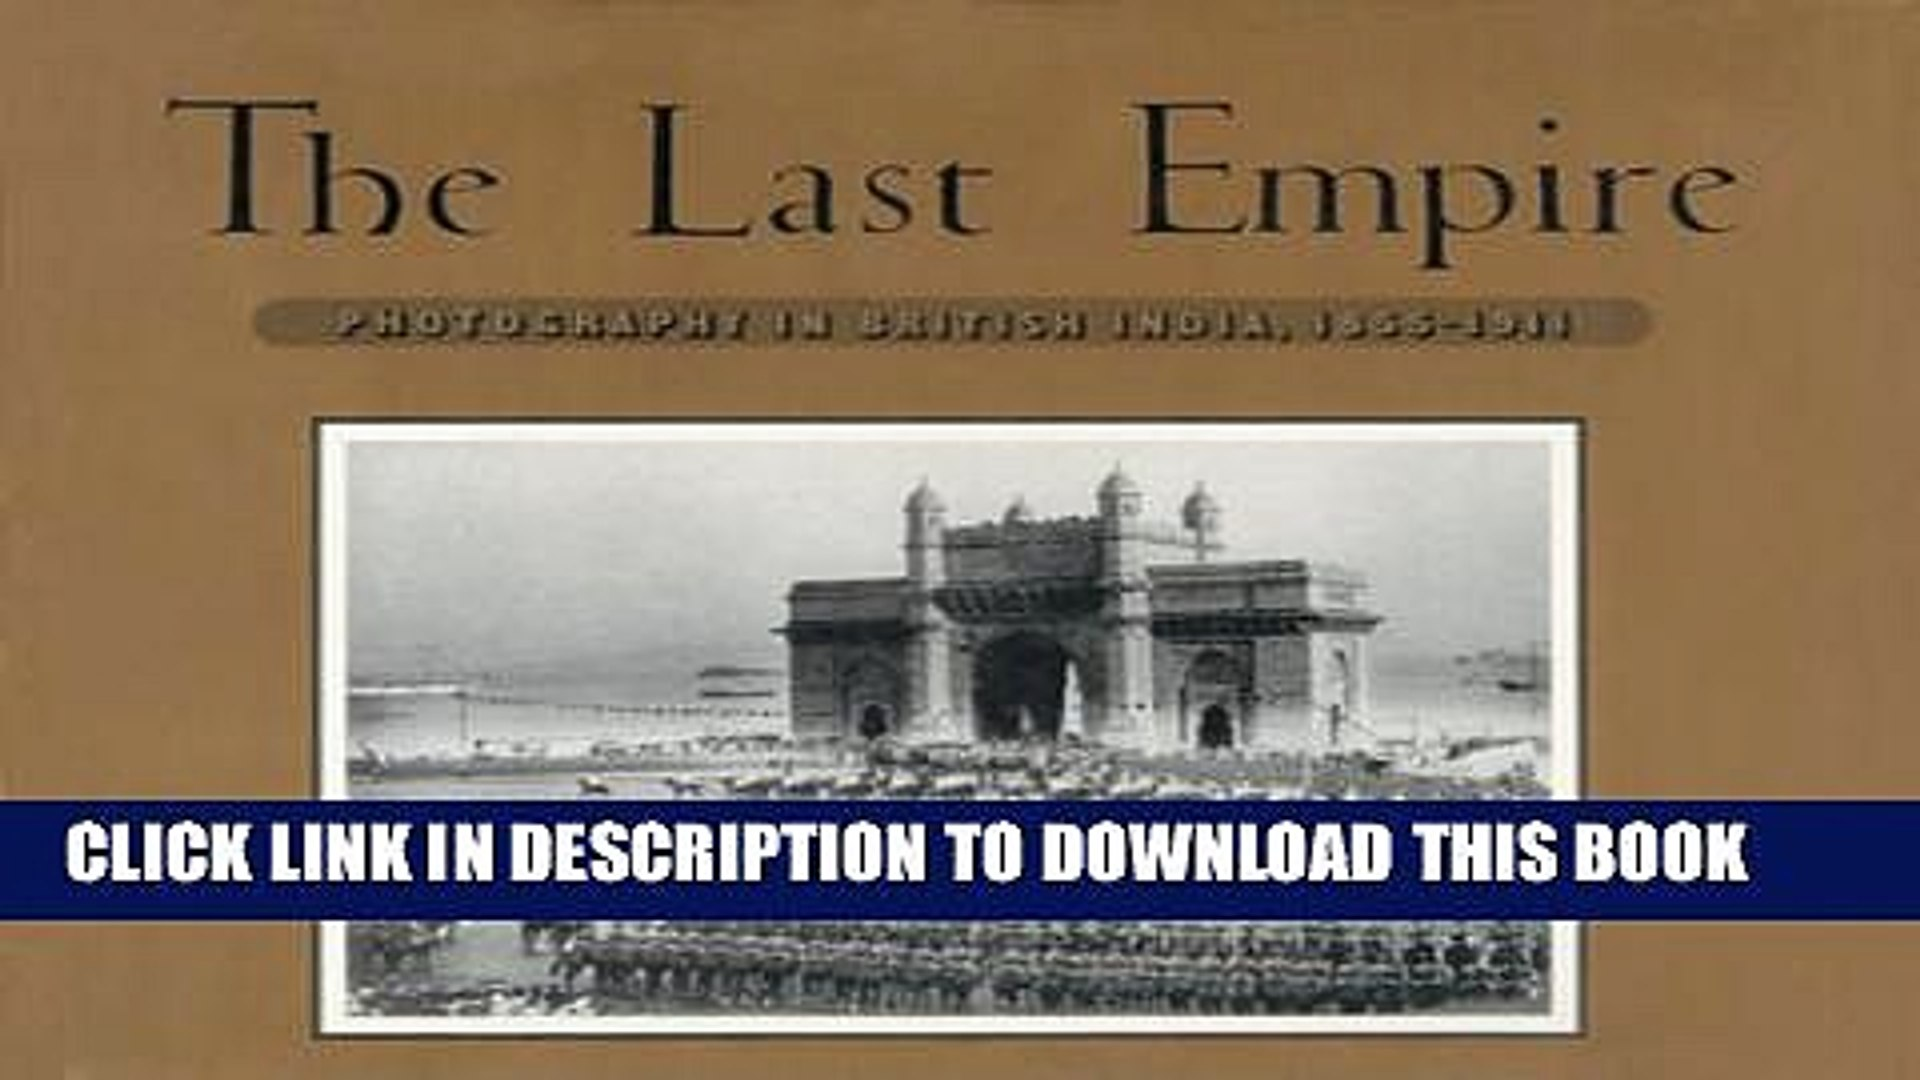 [PDF] The Last Empire: Photography in British India: 1855-1911 Full Online